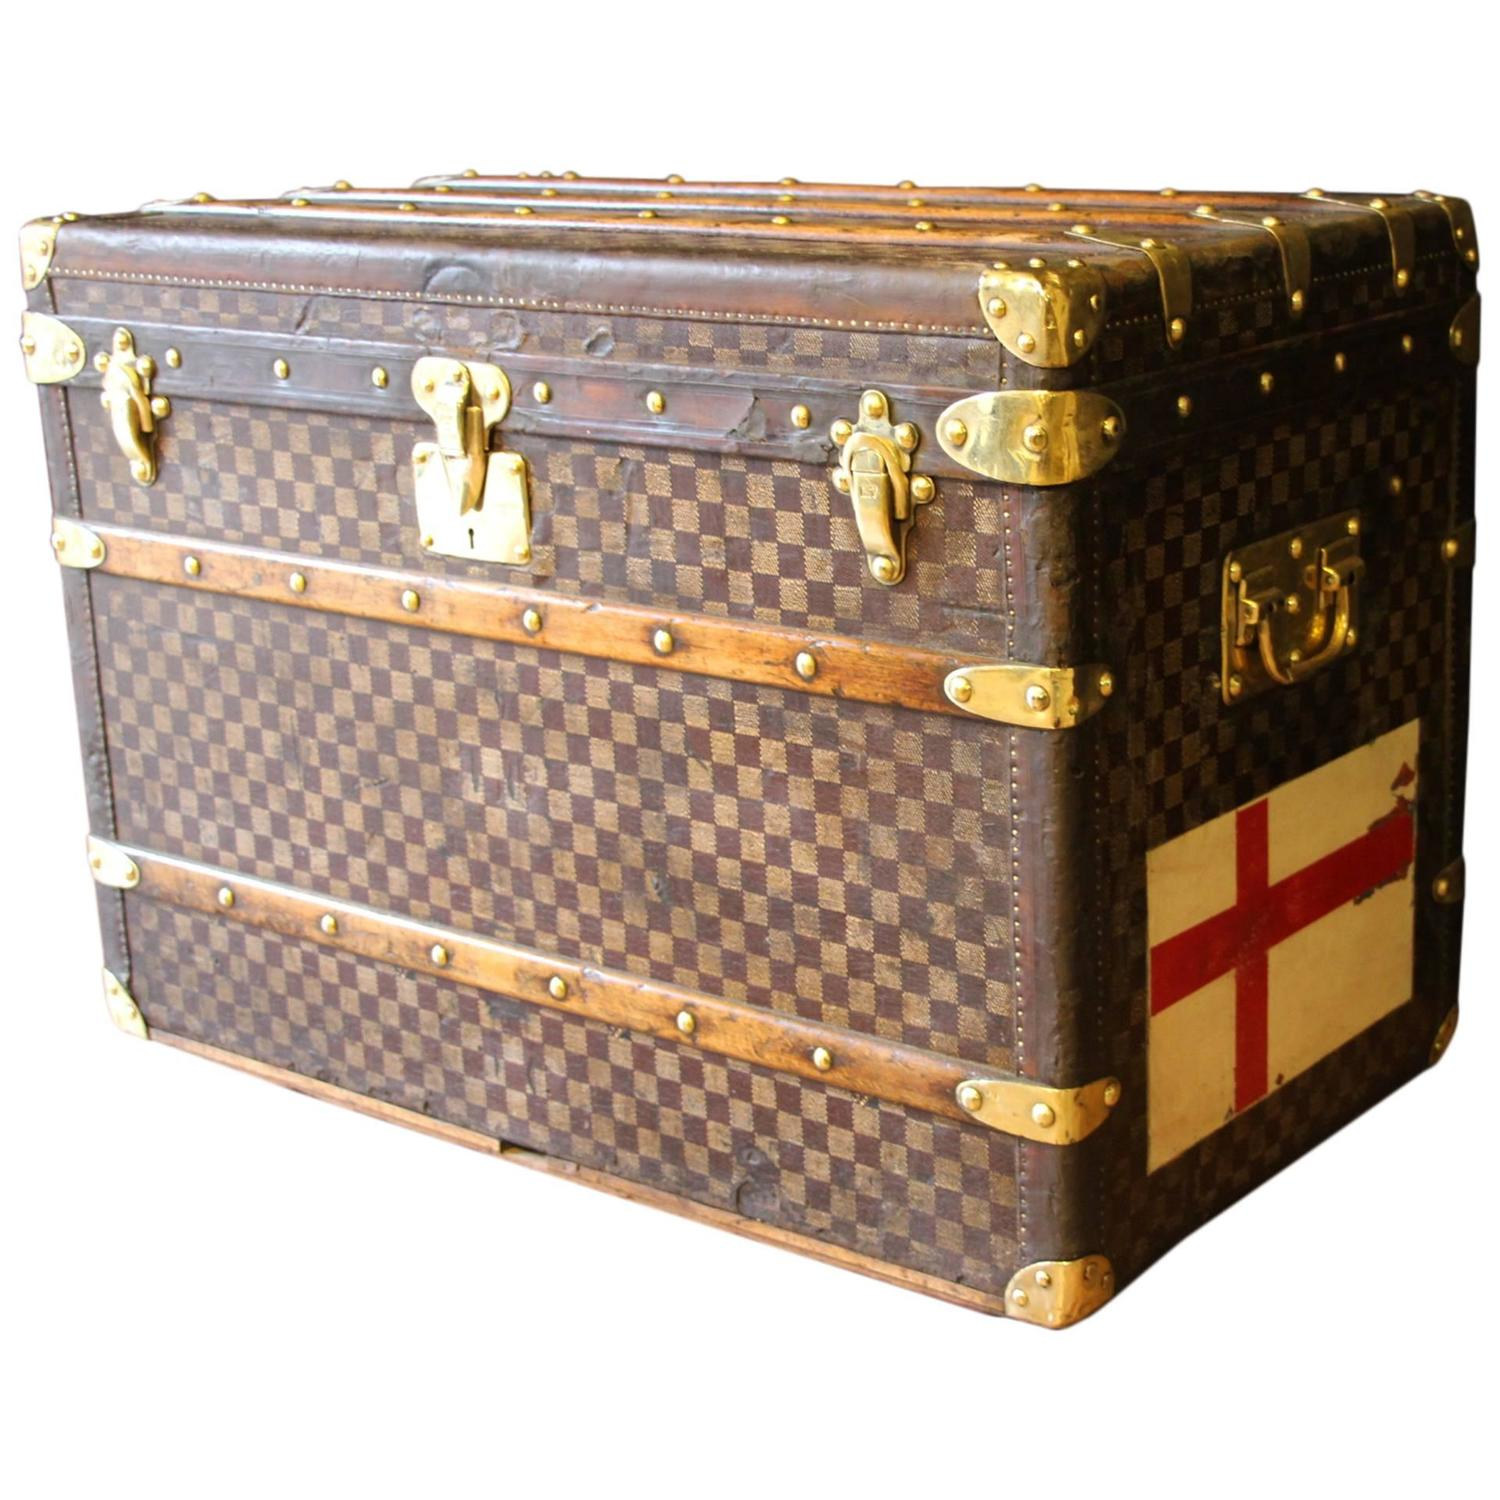 dating louis vuitton trunks Spotting knock-off vintage louis vuitton trunks the luggage in image a is a trunk dating back to 1915 these trunks are commonly seen with many travel stickers.